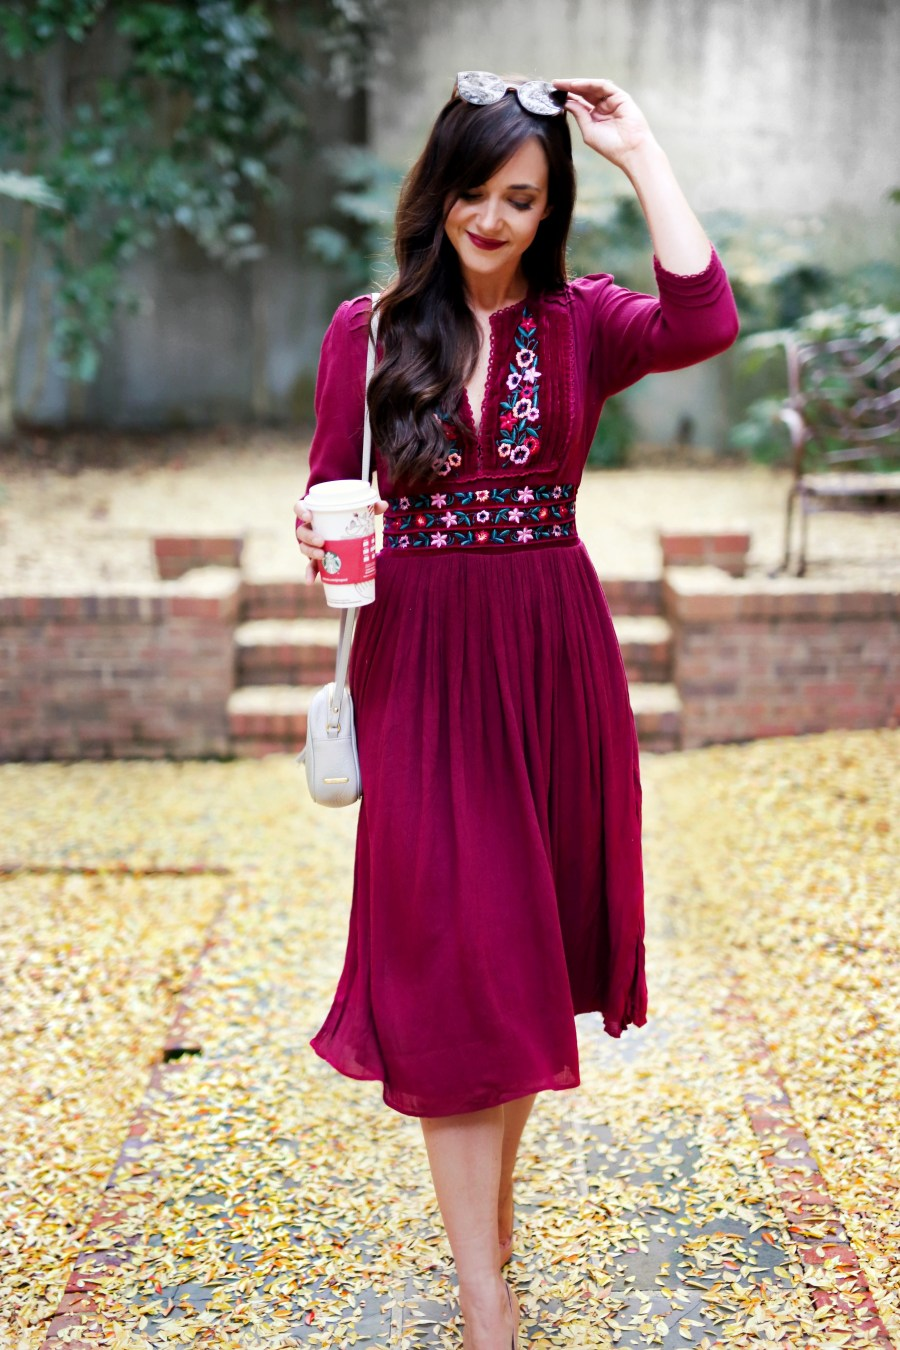 fall dress // christmas card photo dress // burgandy dress